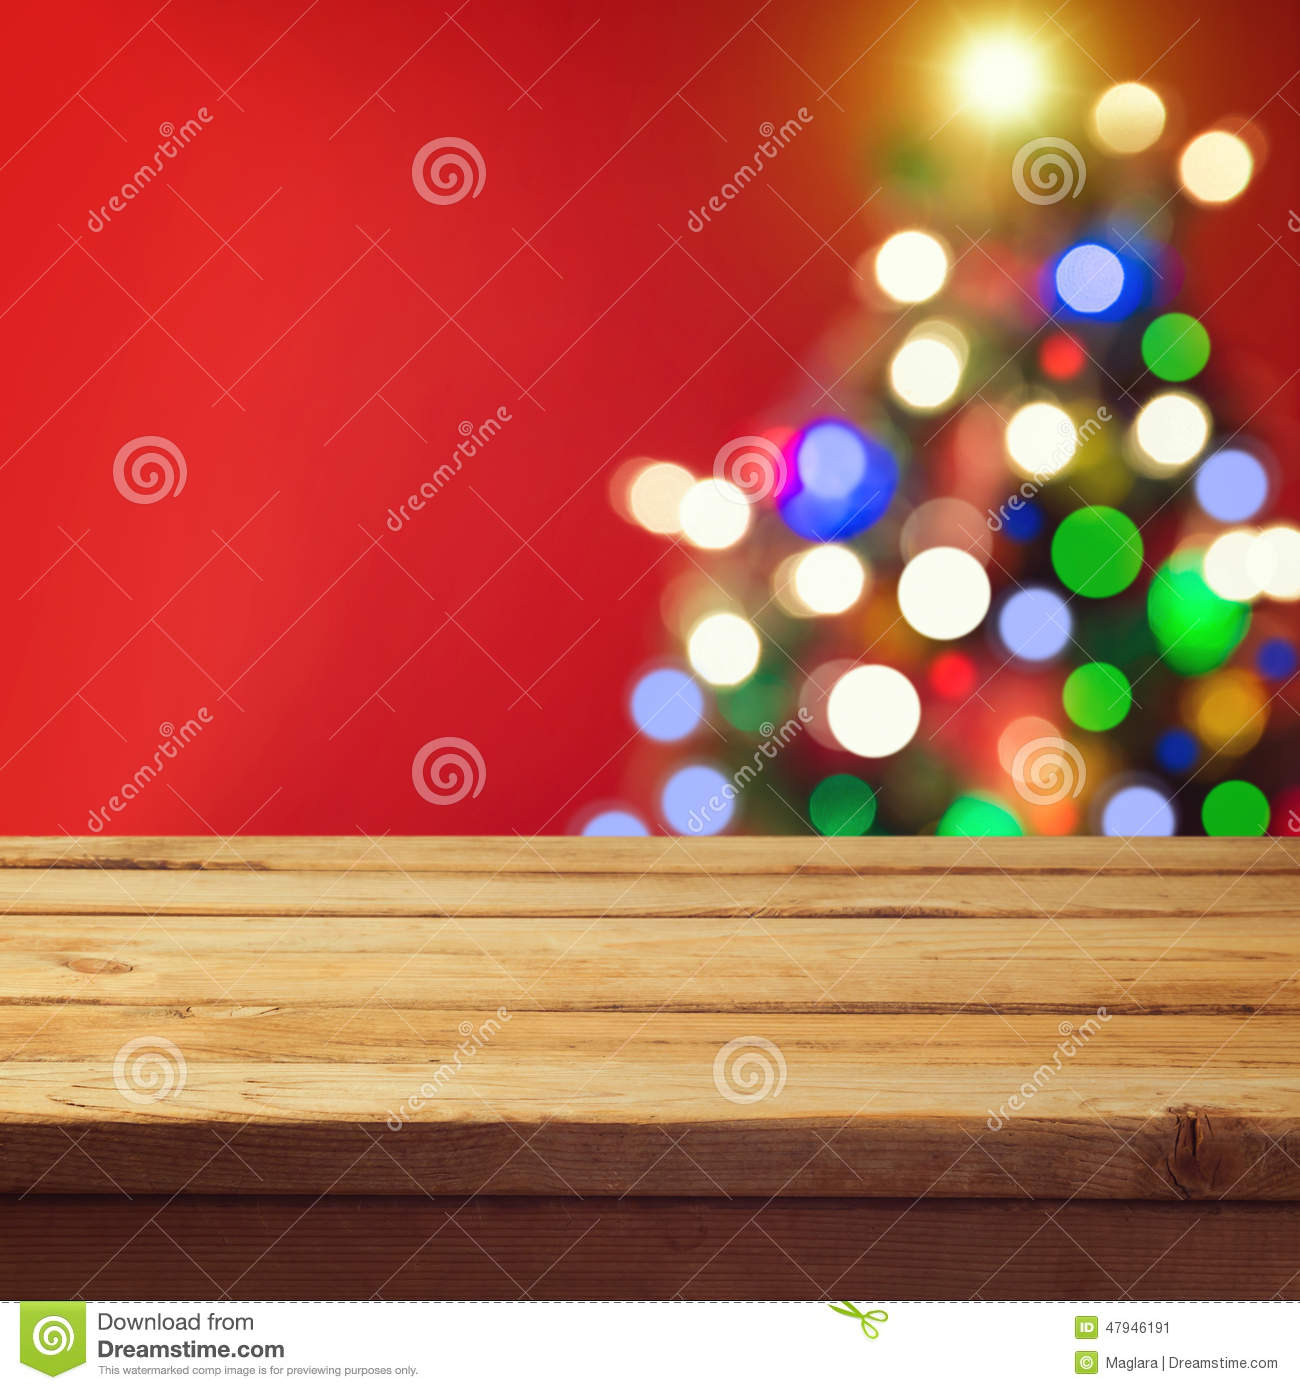 Christmas holiday background with empty wooden deck table over Christmas tree bokeh. Ready for product montage